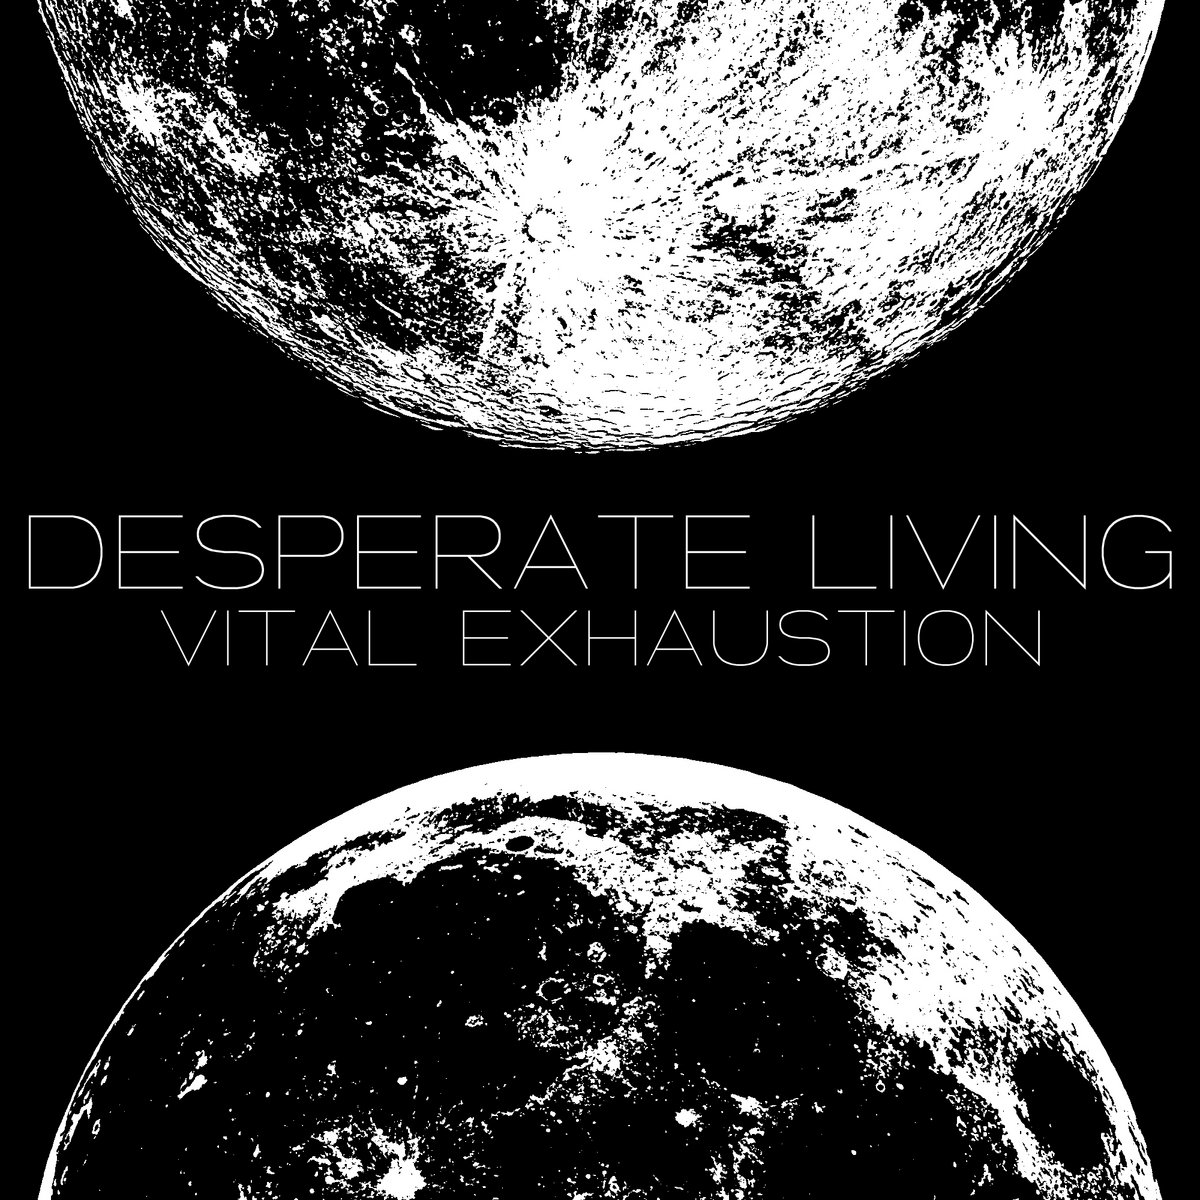 Desperate Living It was the sole early project made without his star, divine; desperate living